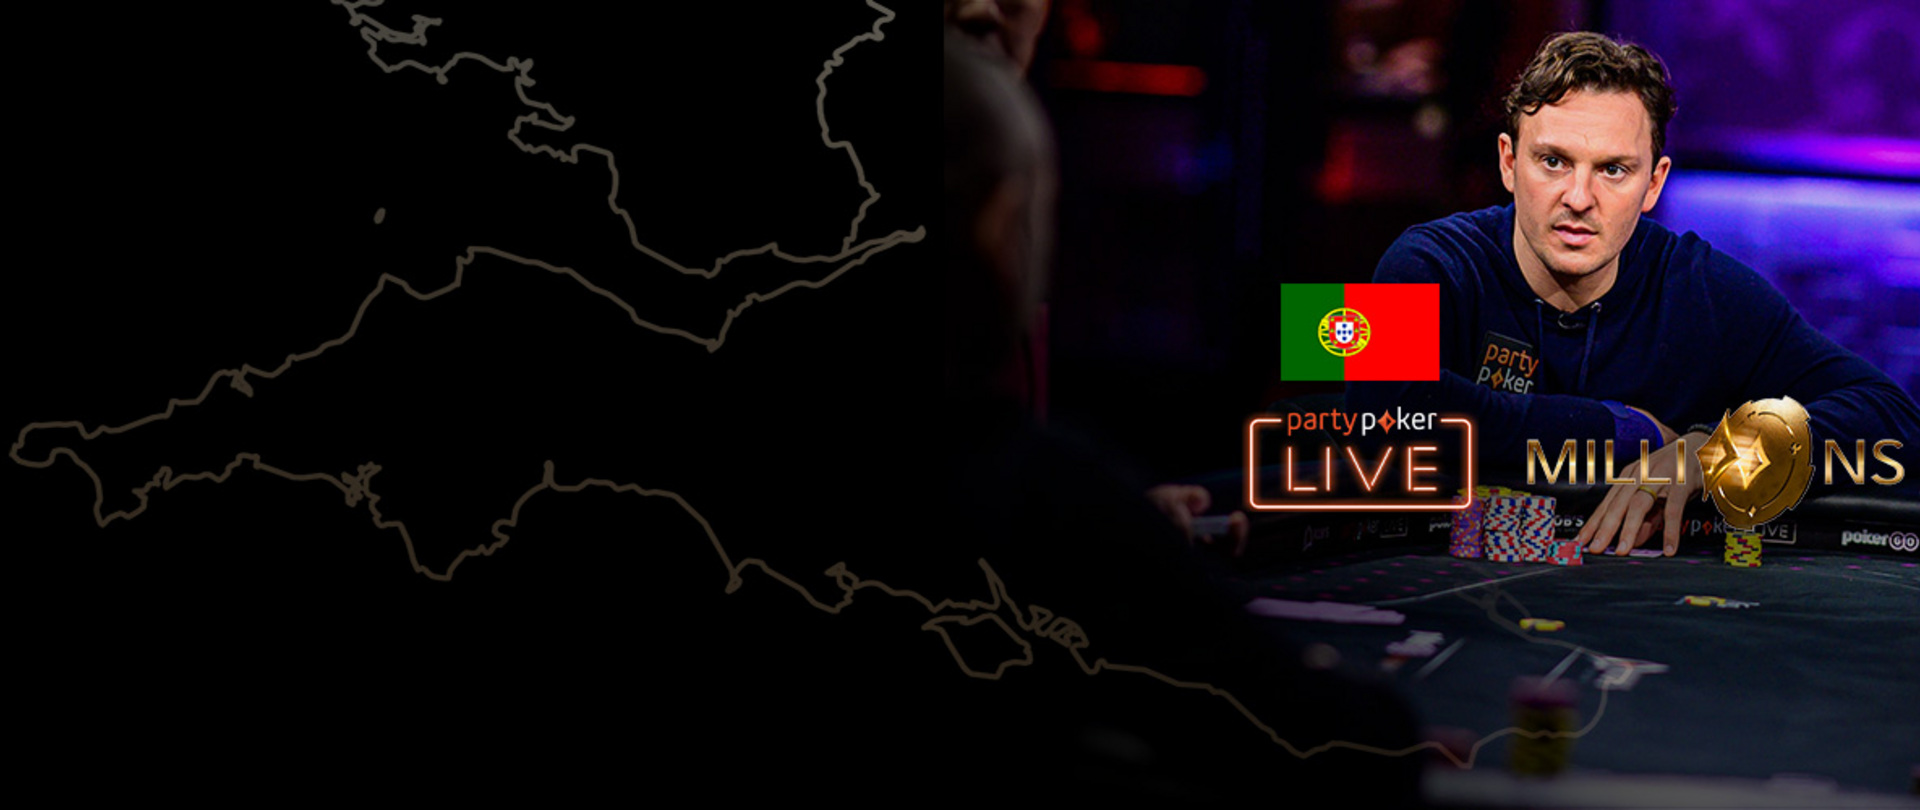 partypoker MILLIONS UK 2020 | $25K Super High Roller | Day 1 (Portuguese)